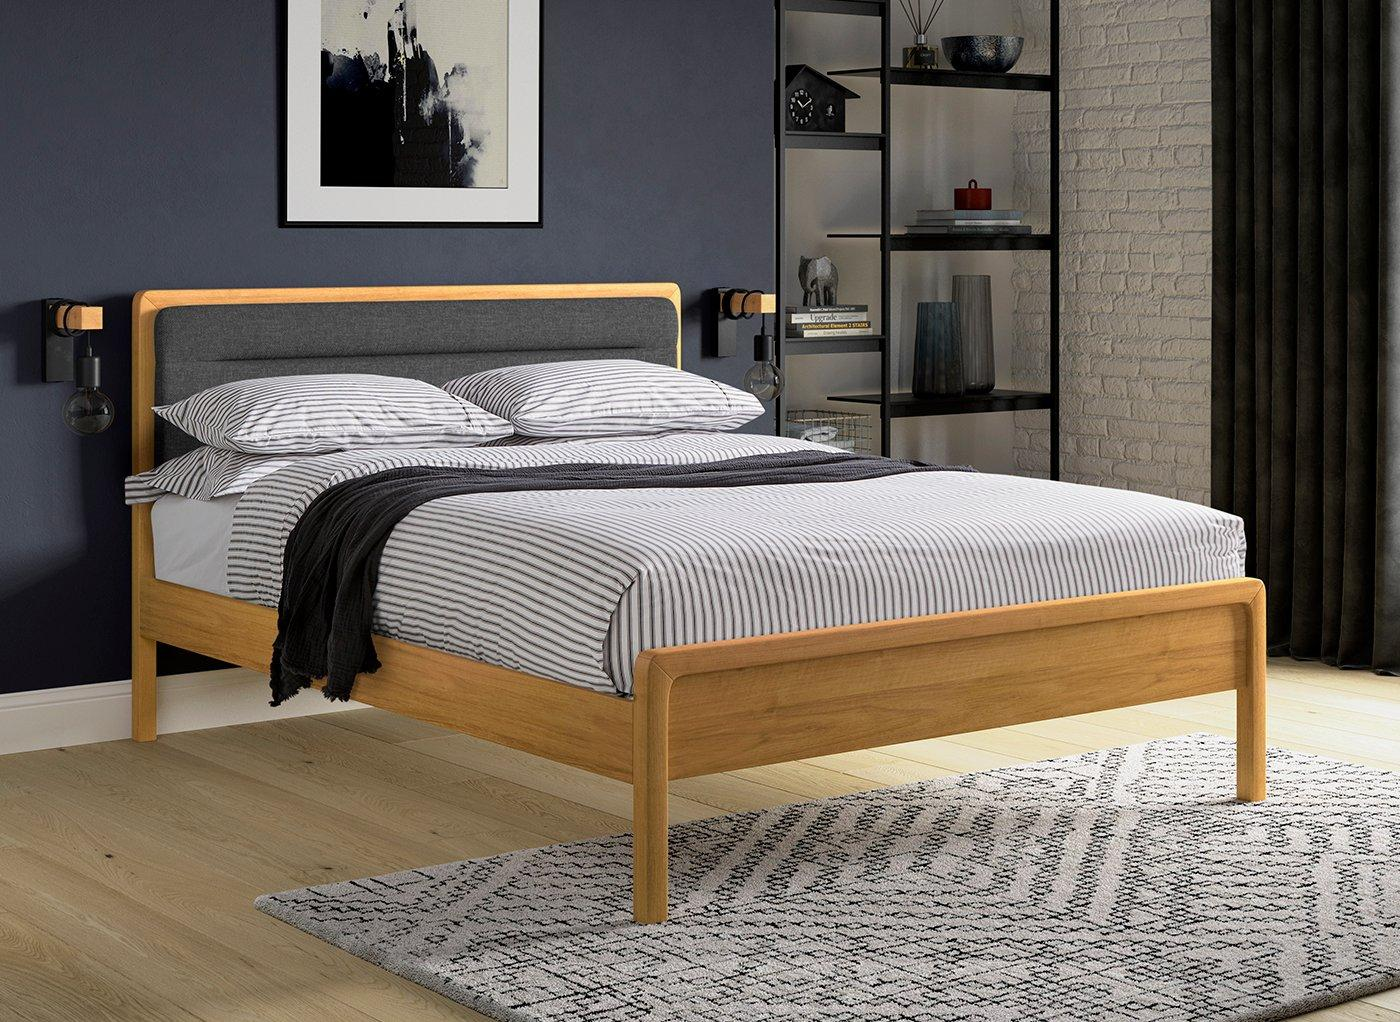 Dreams Hastings Wooden Bed Frame from £319